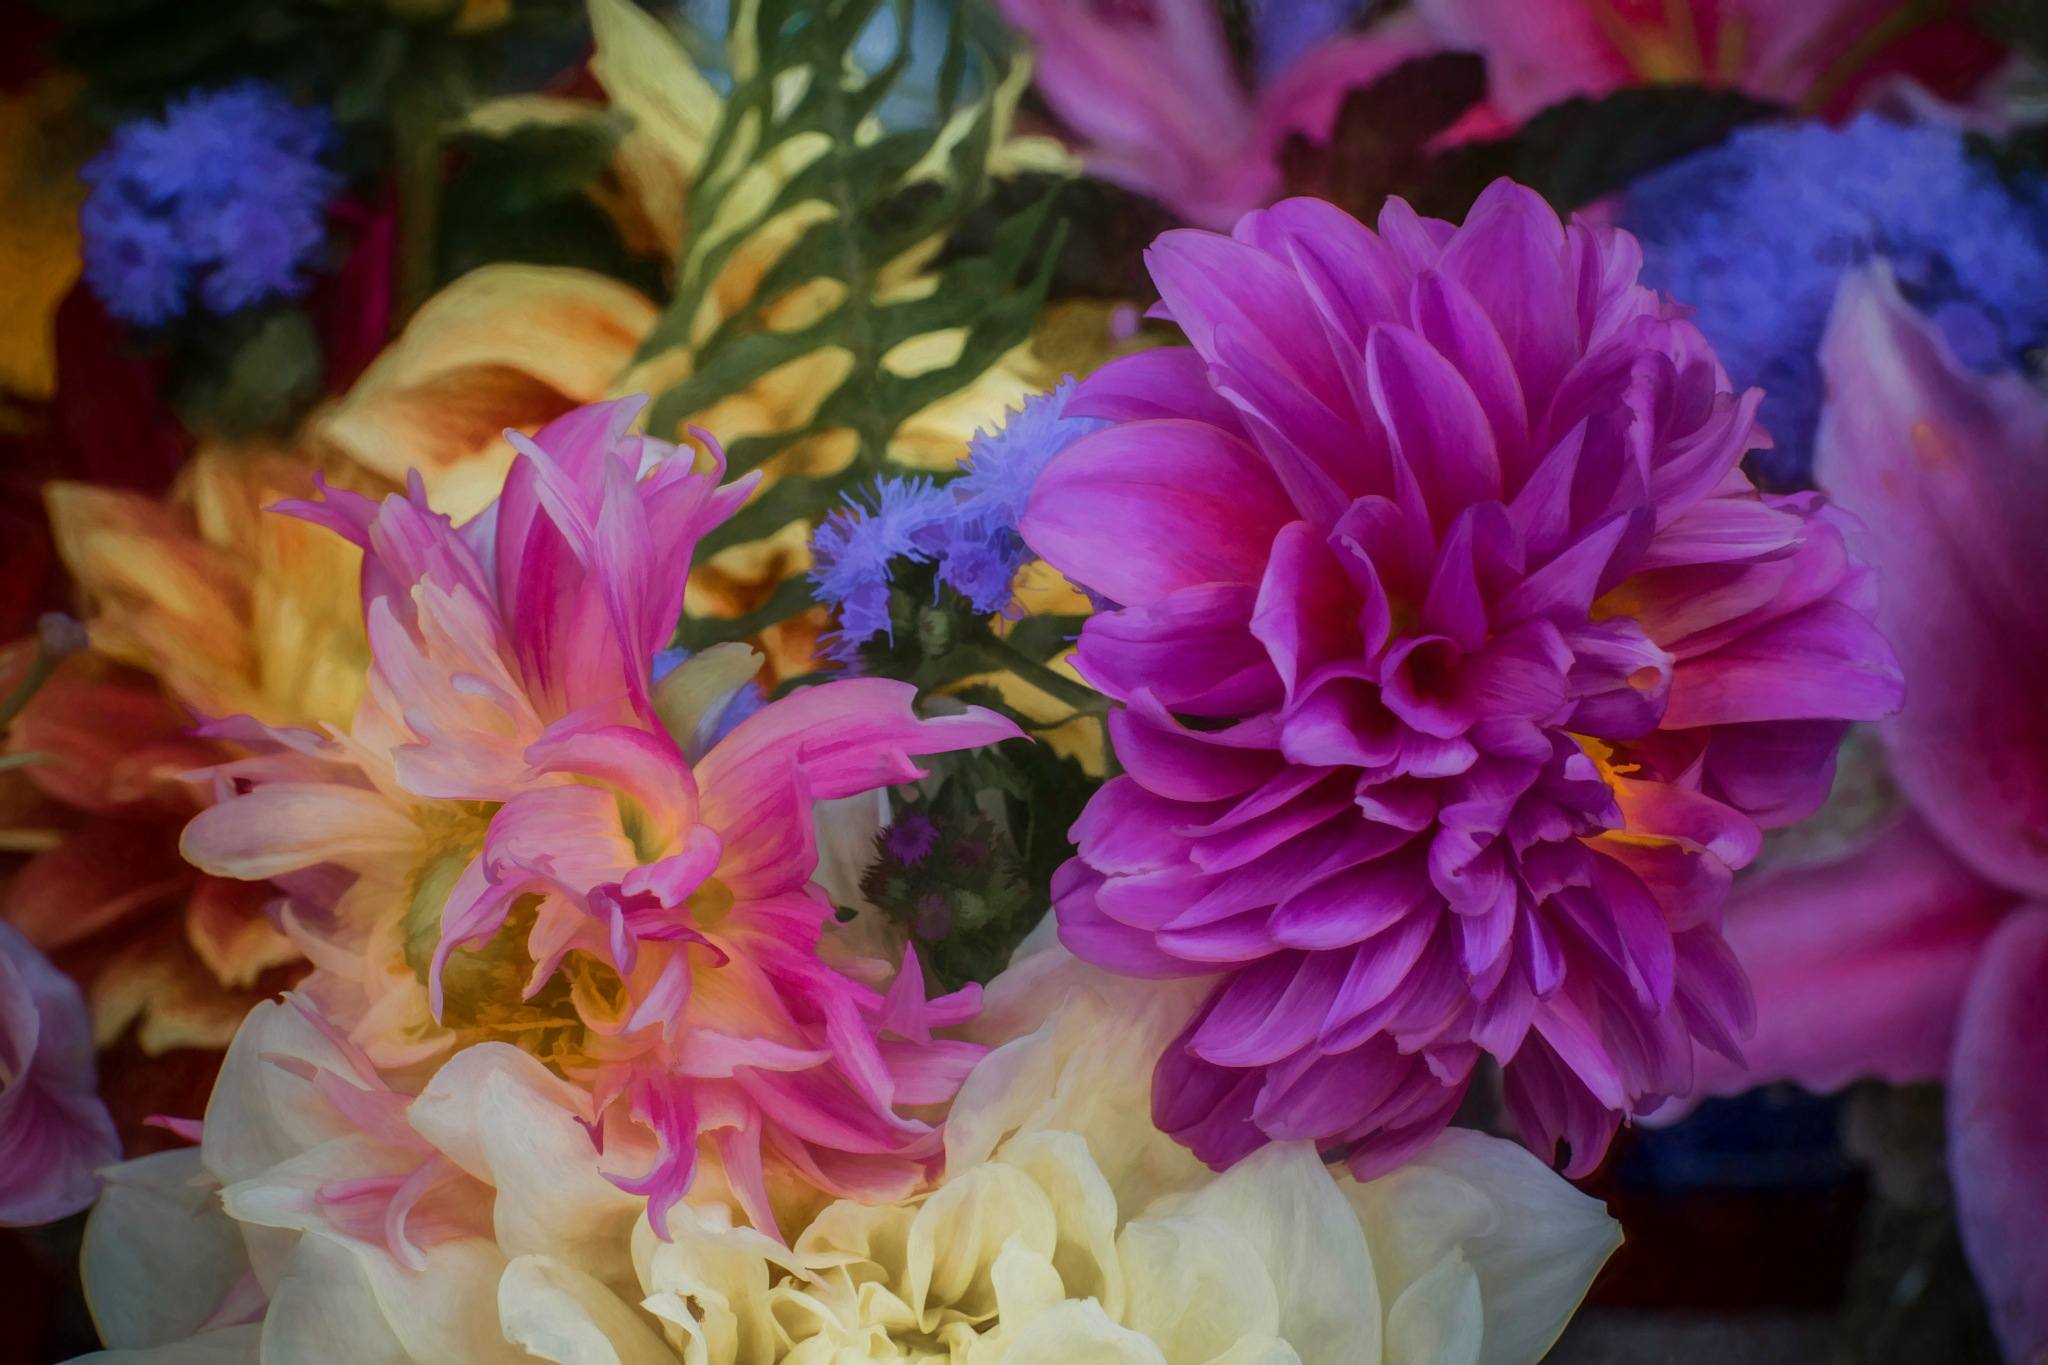 Floral 216 by JohnEllingson